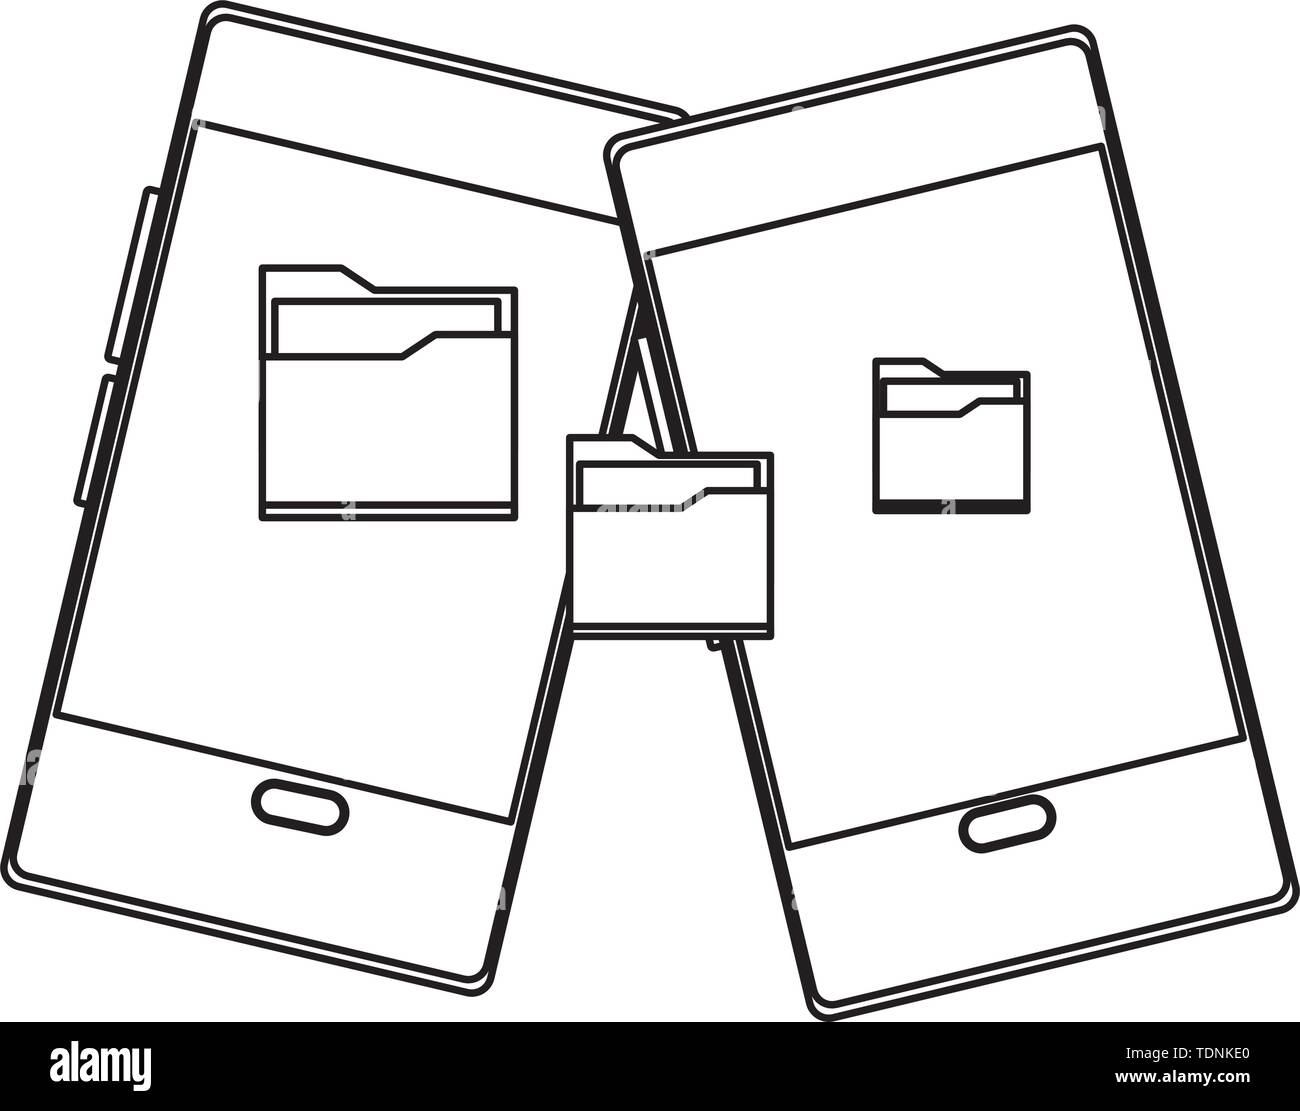 cellphone communication mobile with documents folder icon cartoon in black and white vector illustration graphic design - Stock Image